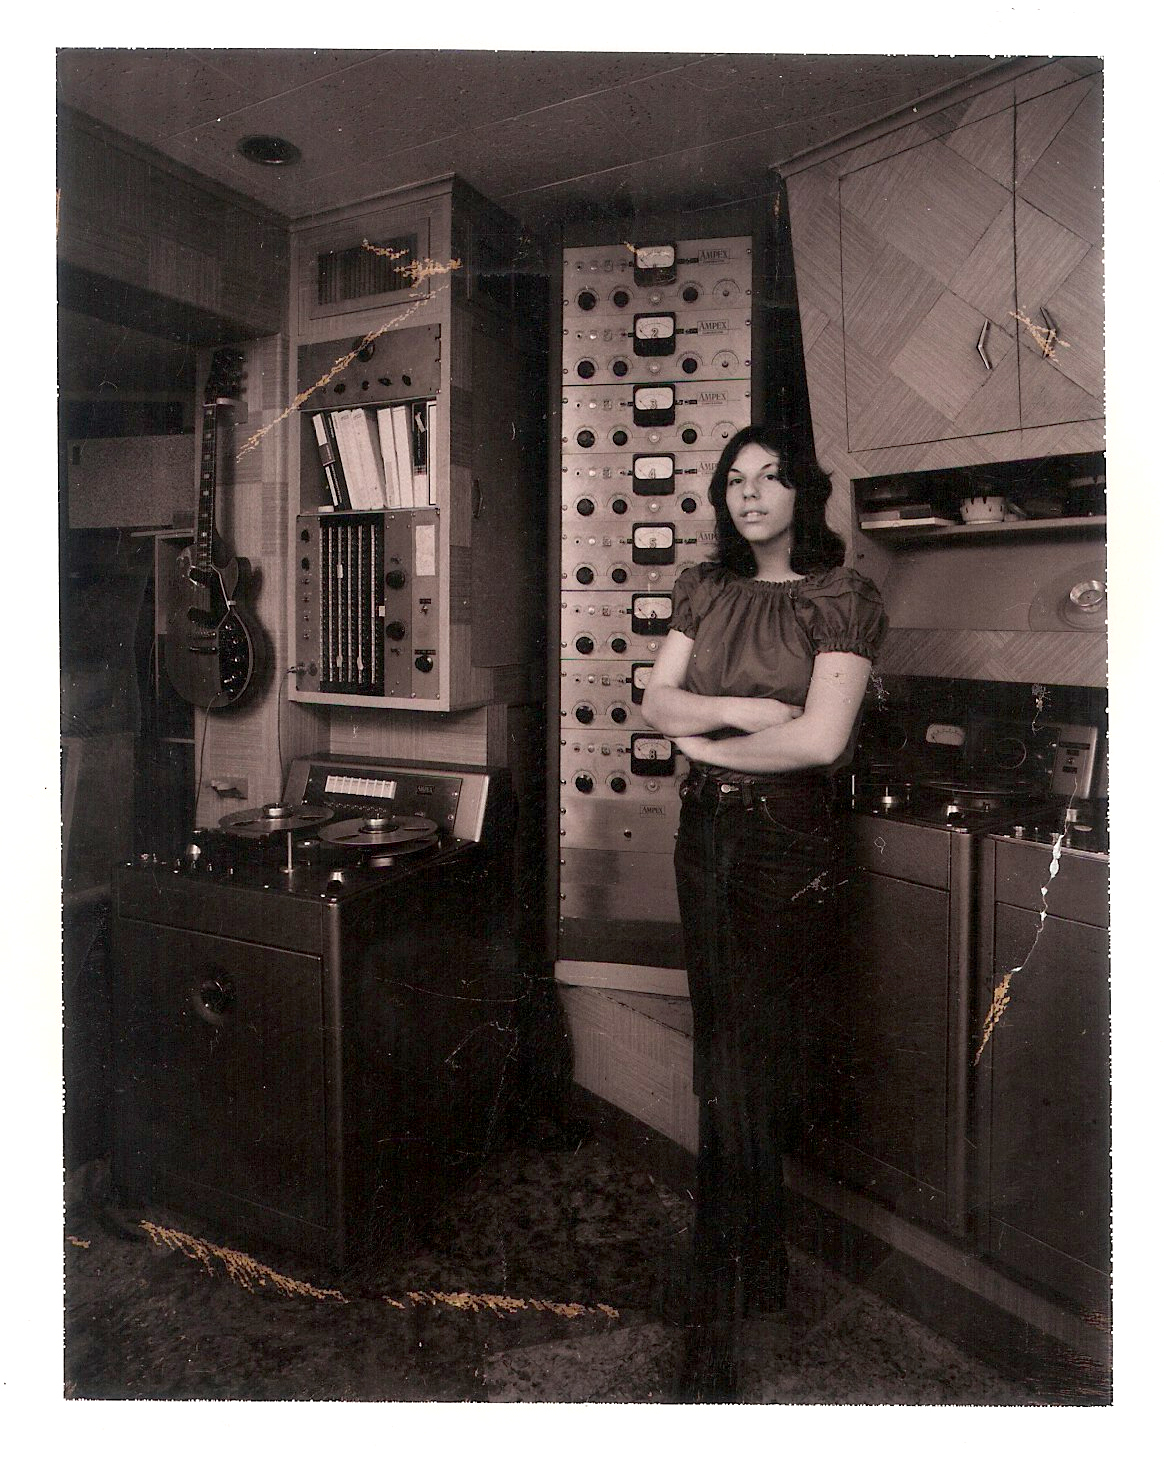 Kari in the Les Paul Studio in Mawah, NJ 1970's